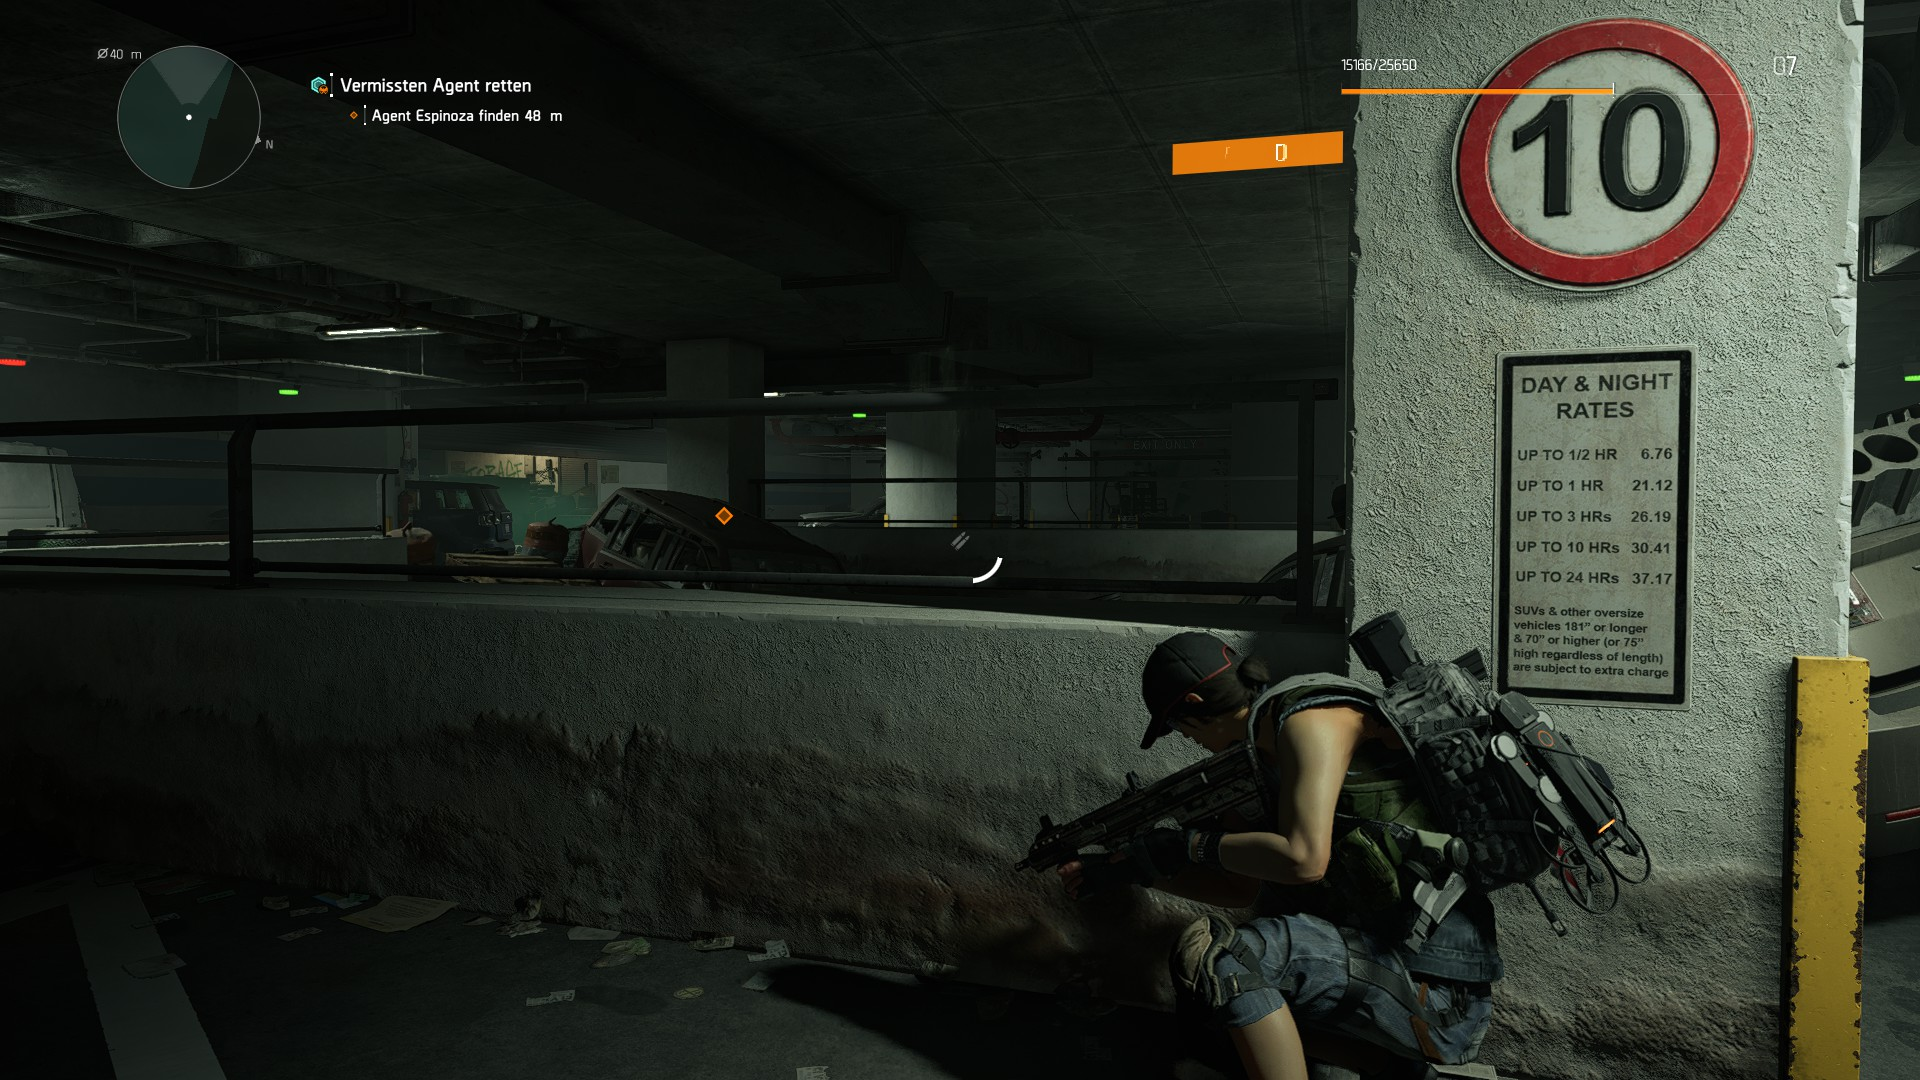 Tom Clancy's The Division® 22019-5-7-2-26-34.jpg